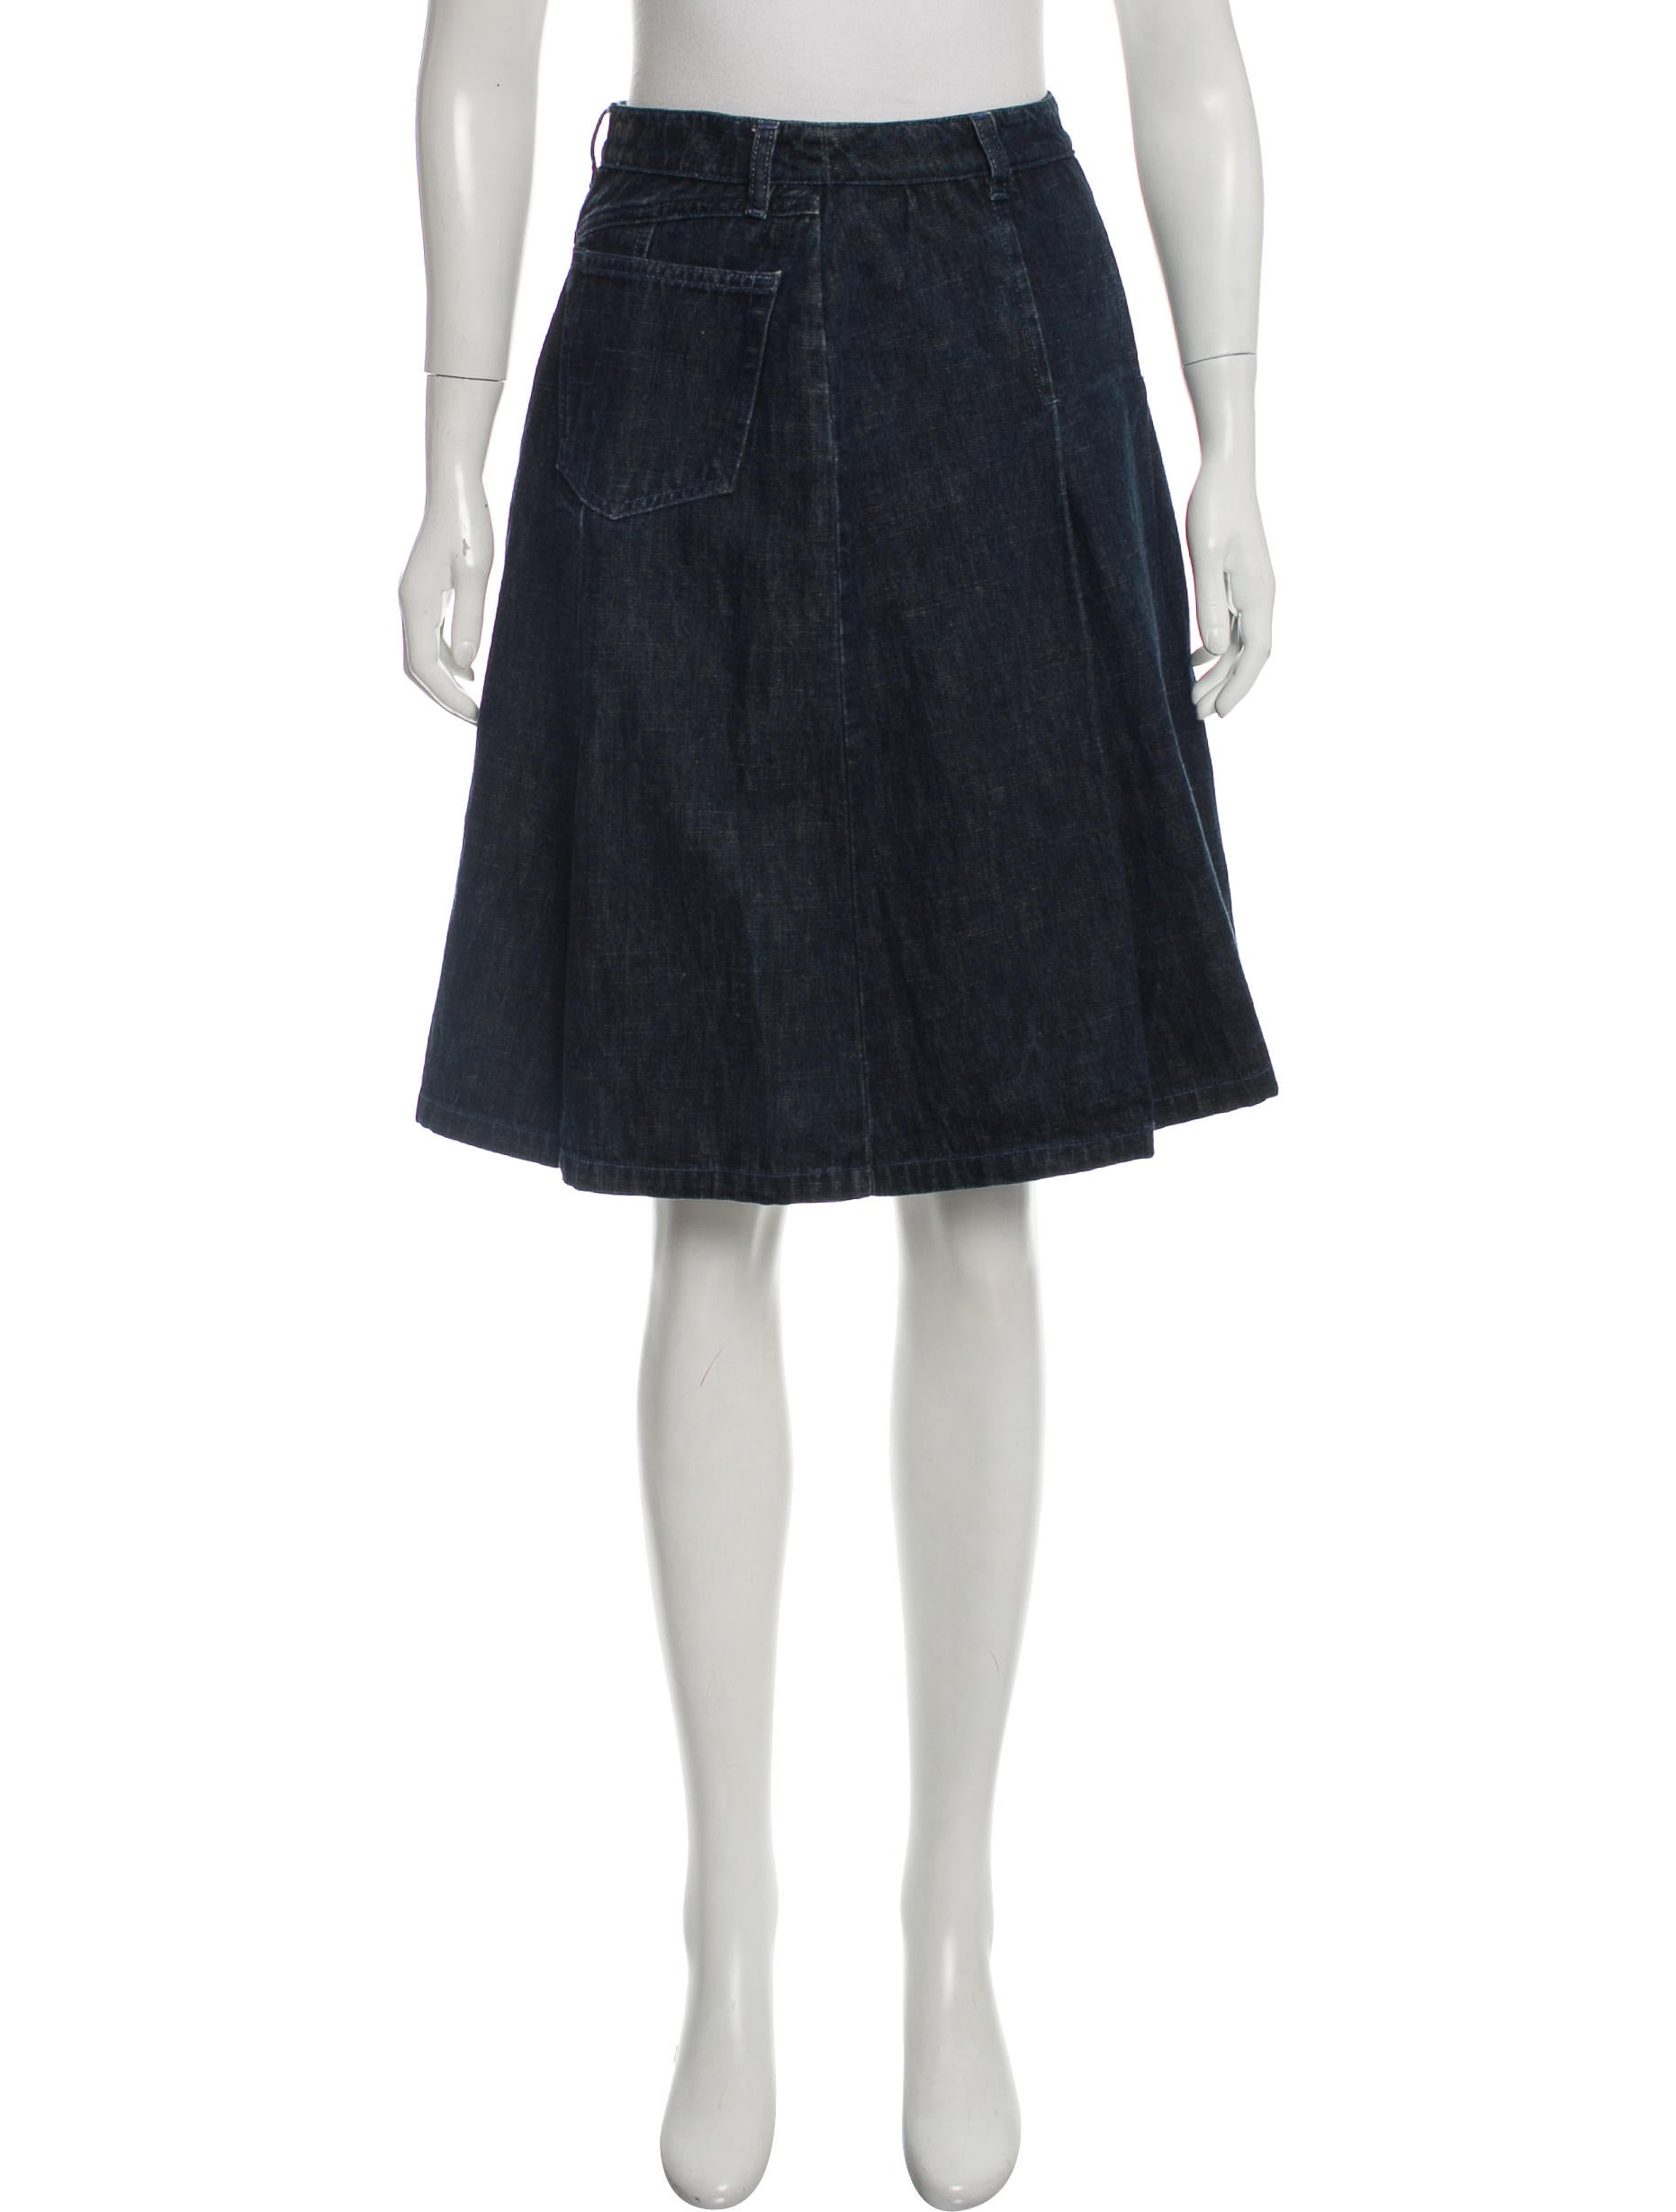 Find great deals on eBay for pleated denim skirt. Shop with confidence.